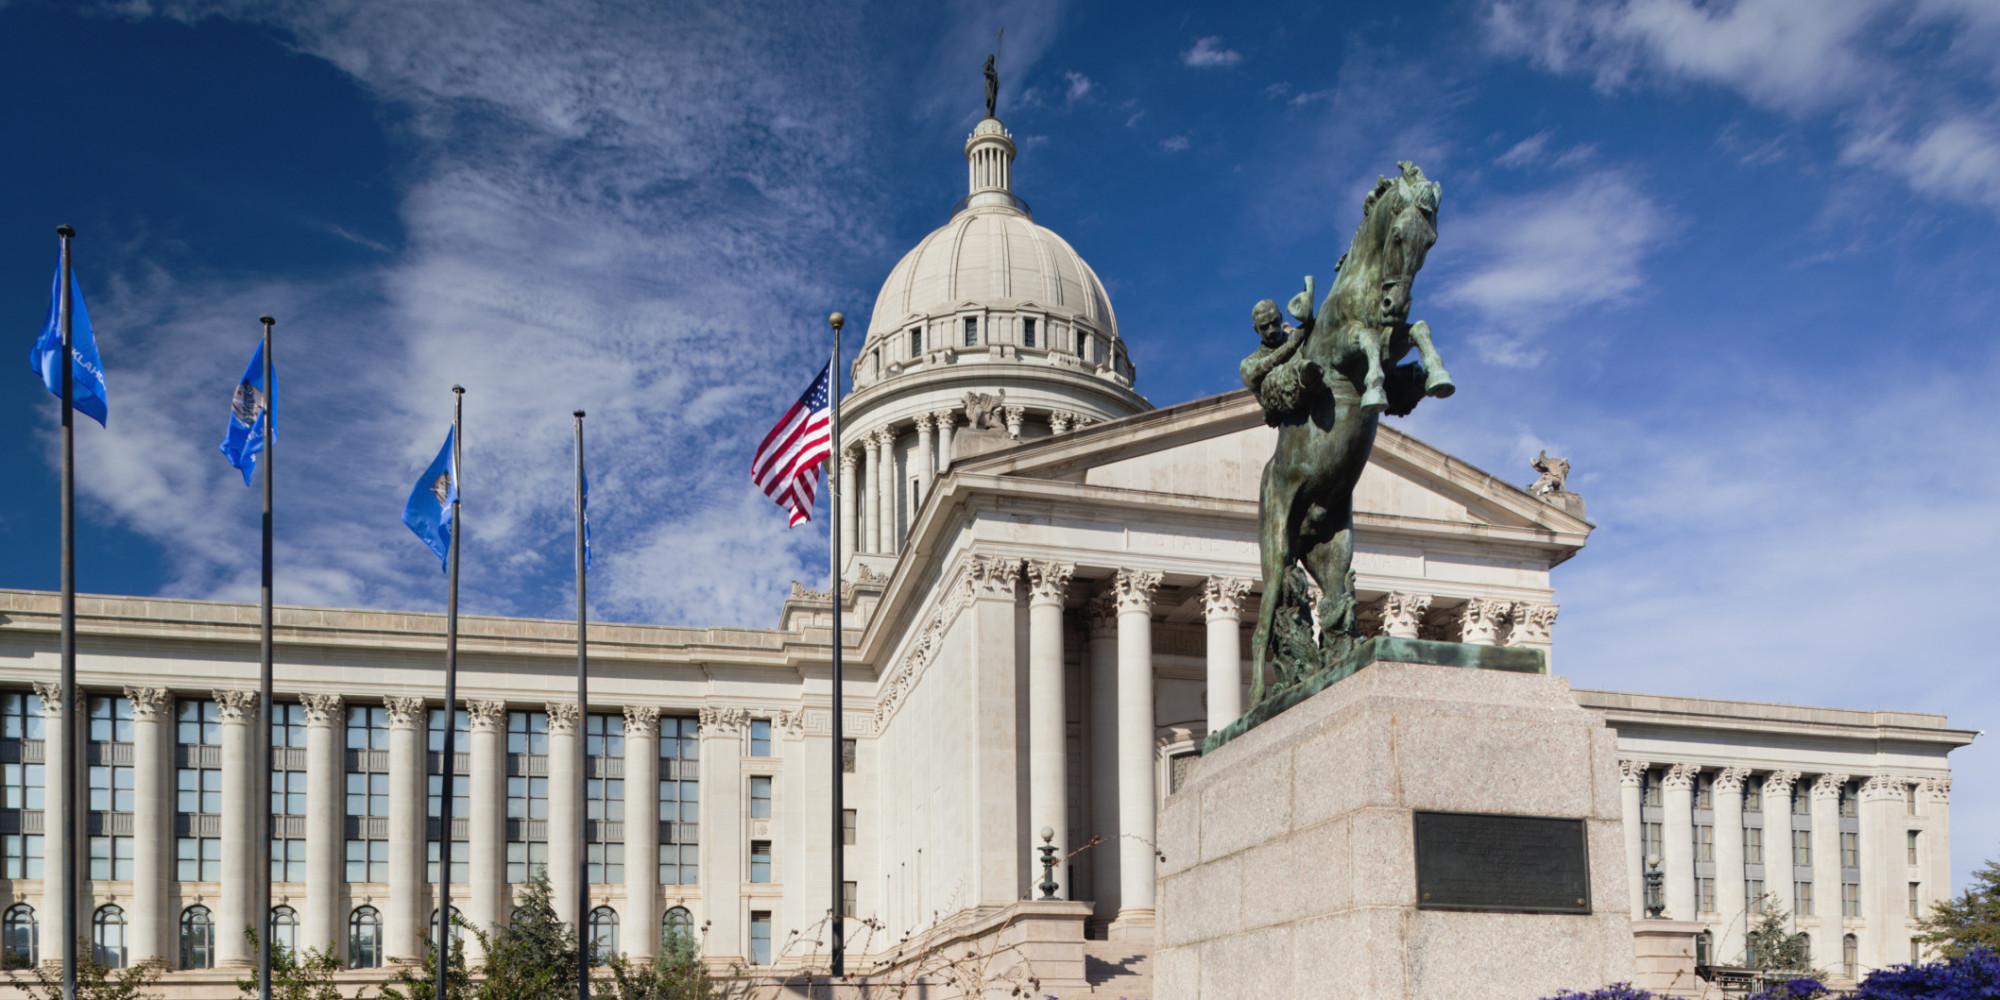 o-OKLAHOMA-STATE-CAPITOL-BUILDING-facebook